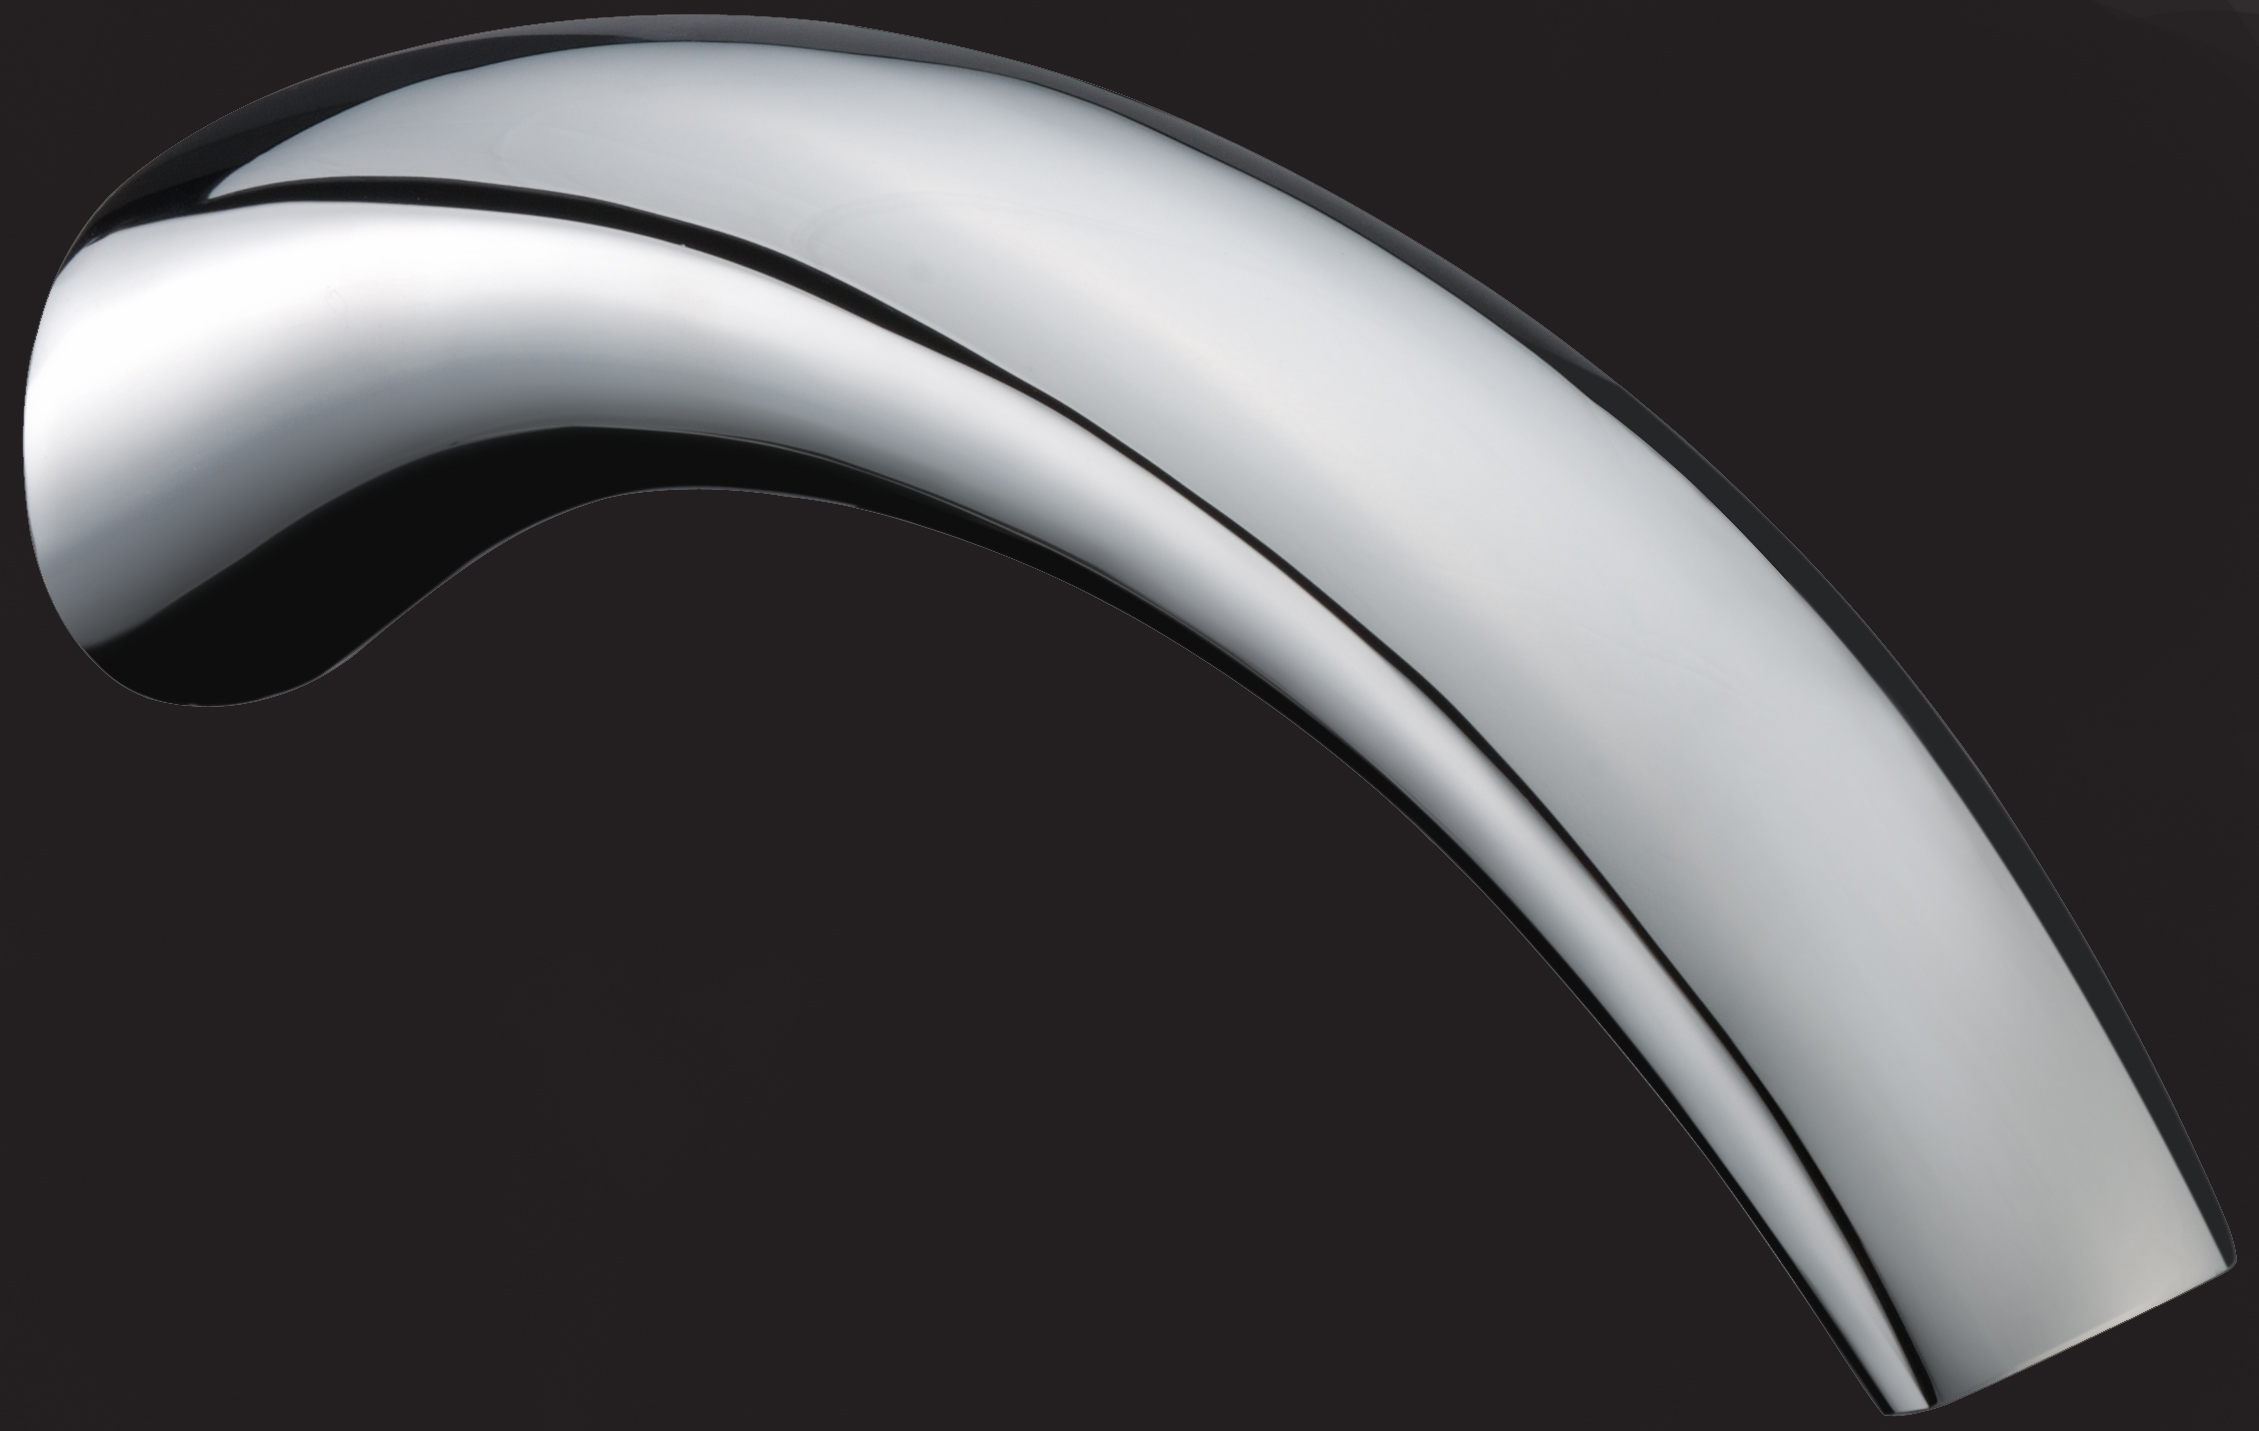 Rossto Dolce Bathroom Curved Wall Bath Spout Chrome